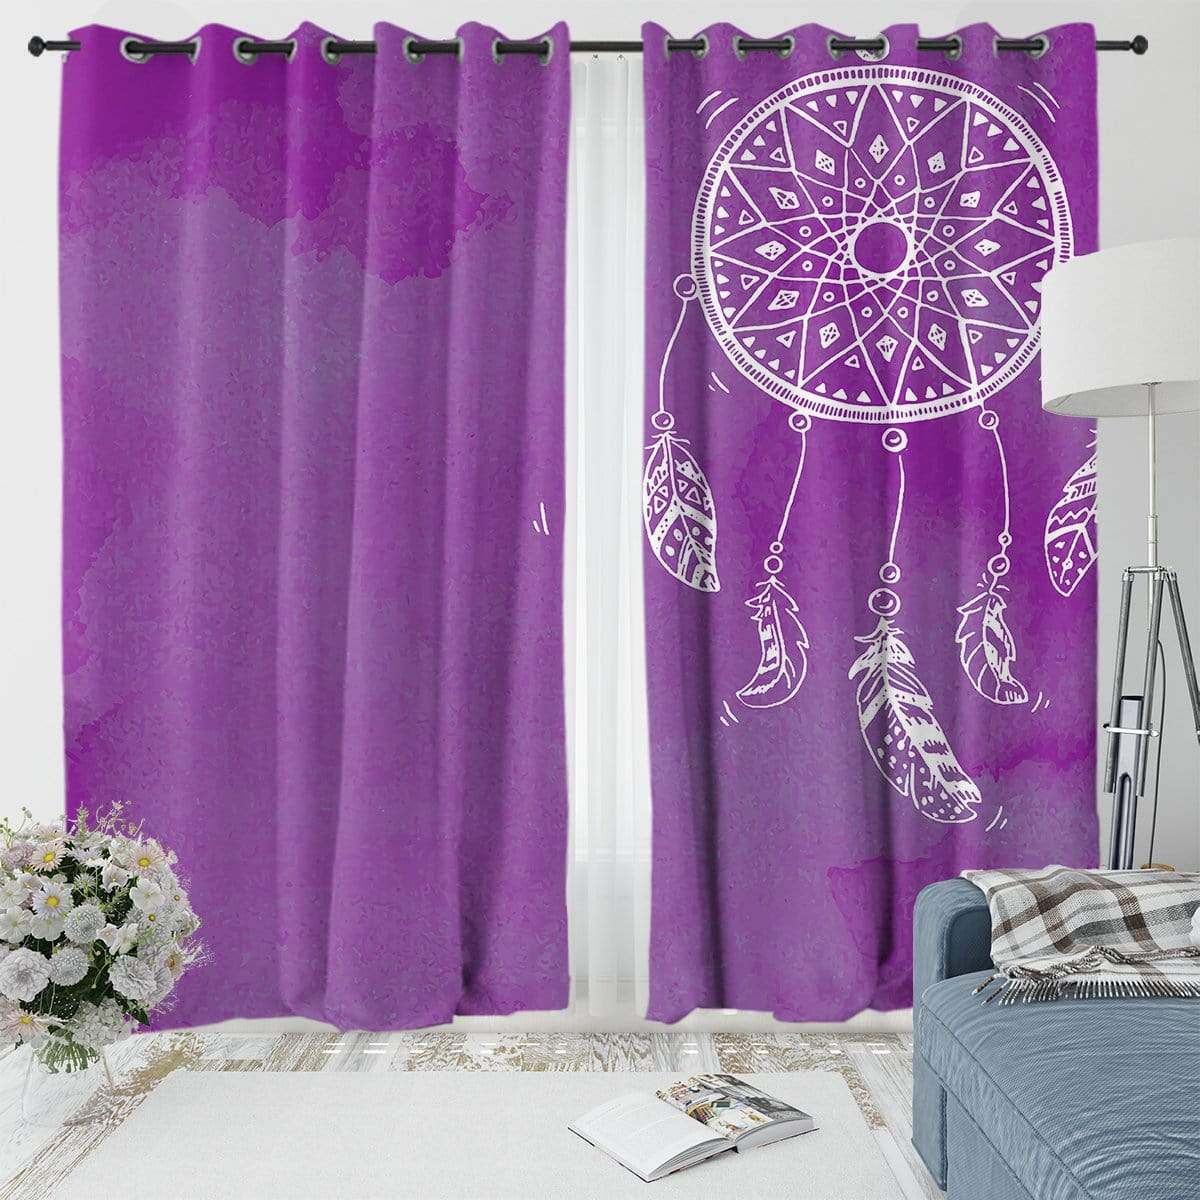 Bahaman Sea Purple Dreamcatcher Curtain Set